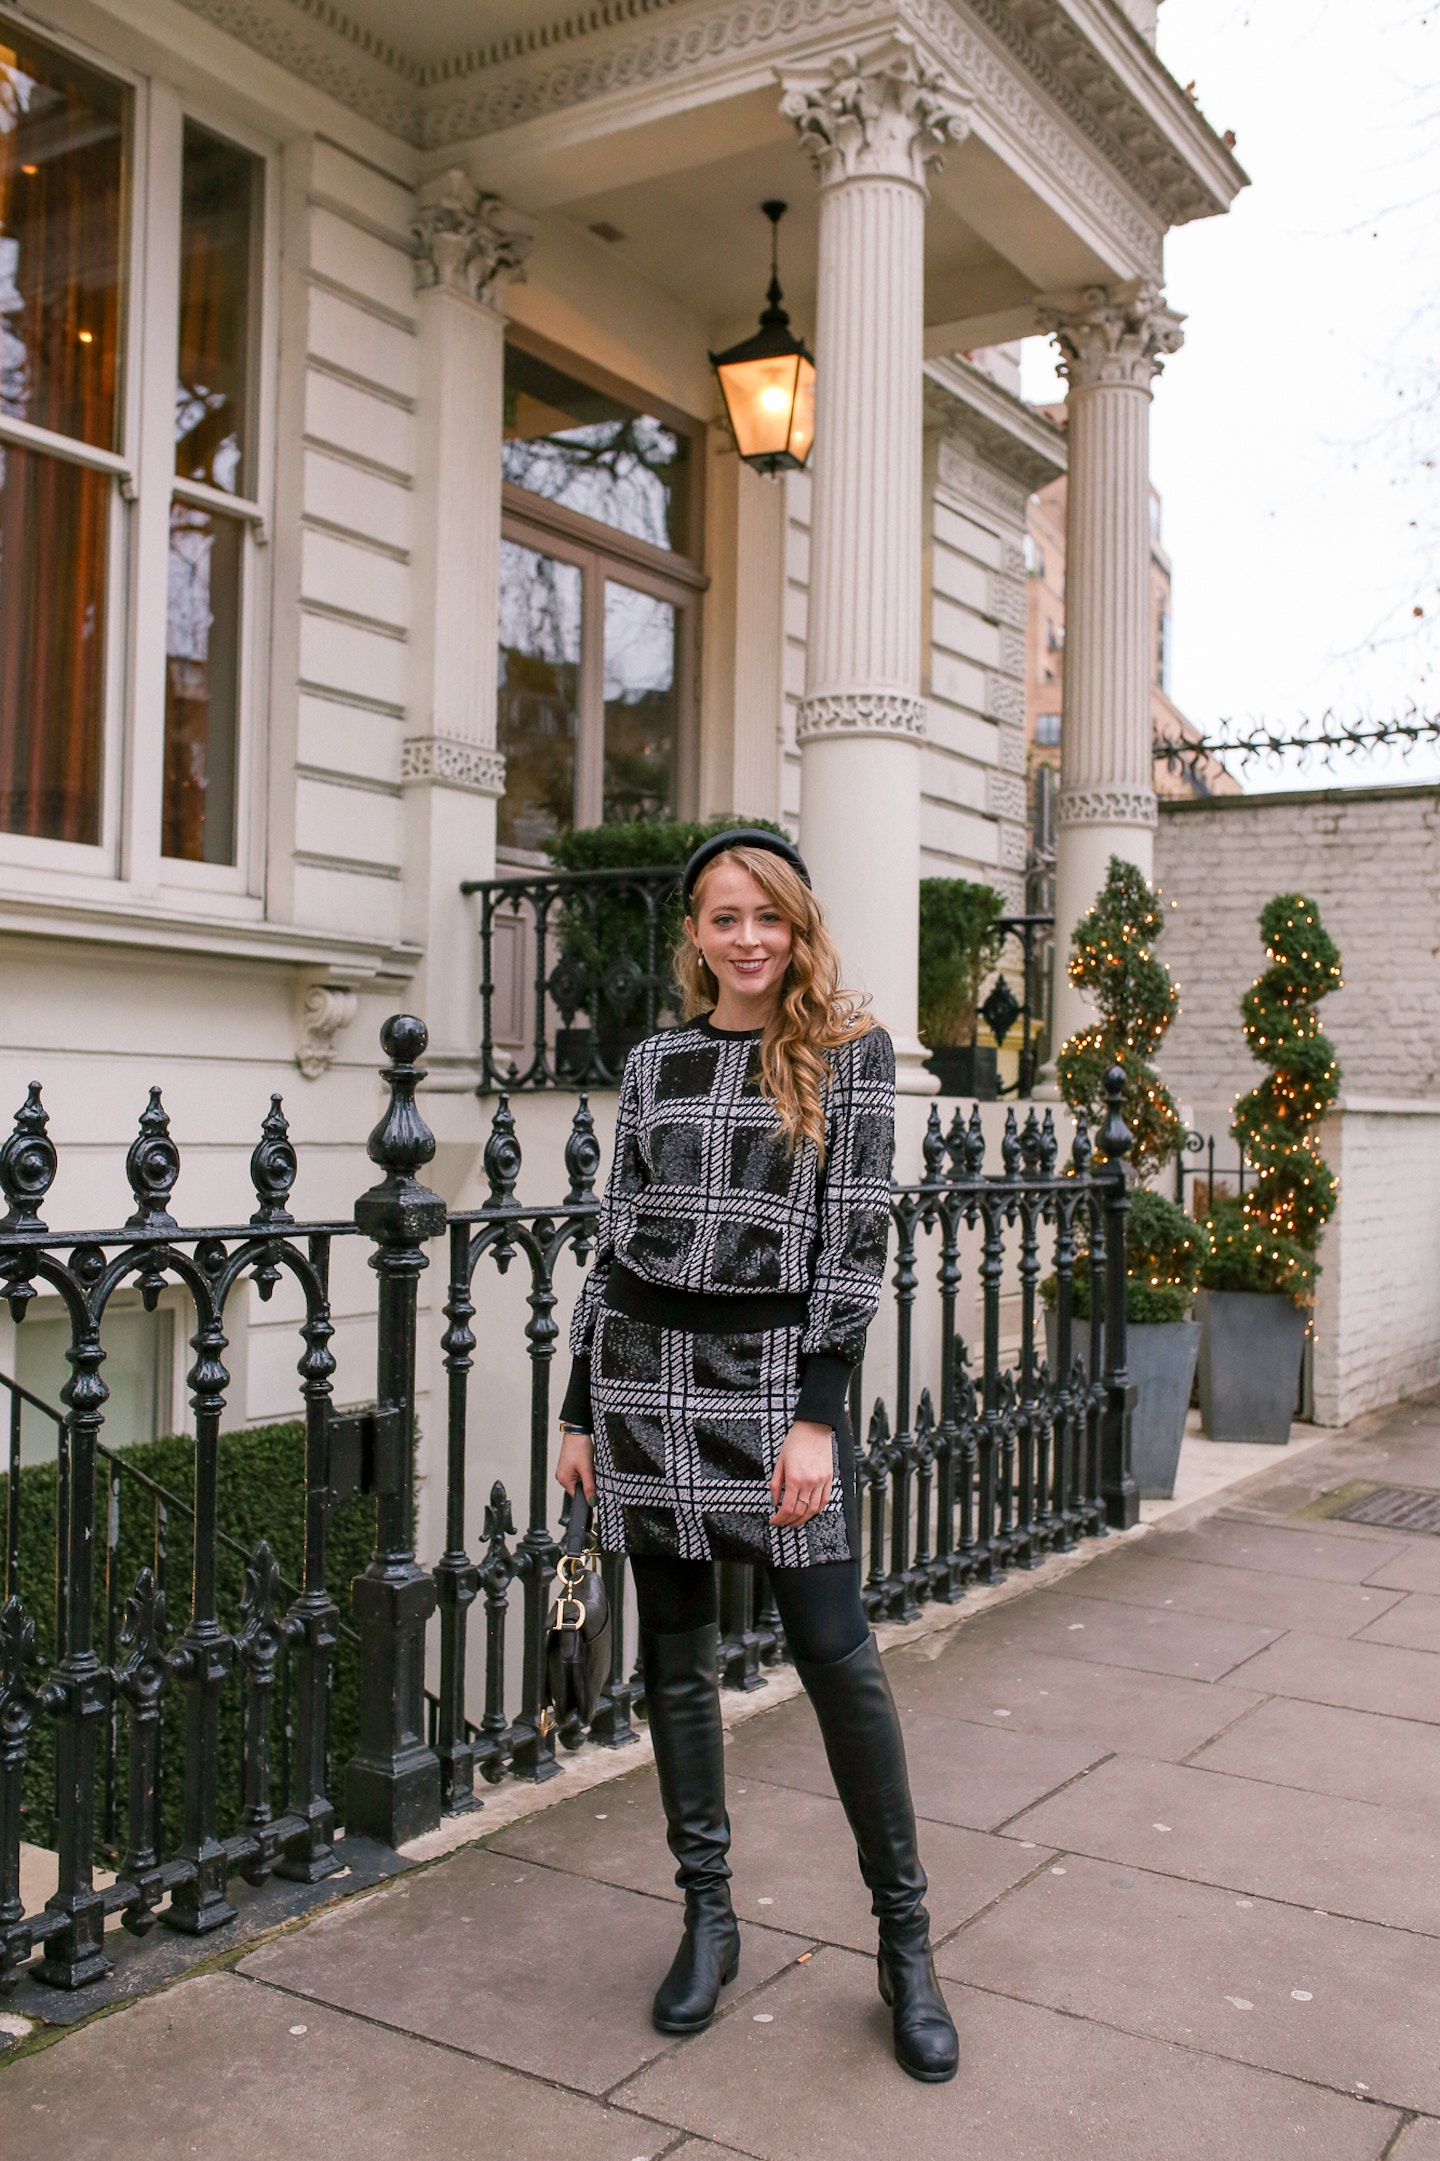 Hotel Xenia London Review: sharing a review of this 4-star boutique hotel in Kensington, as well as a chic Ted Baker sequin check plaid outfit.